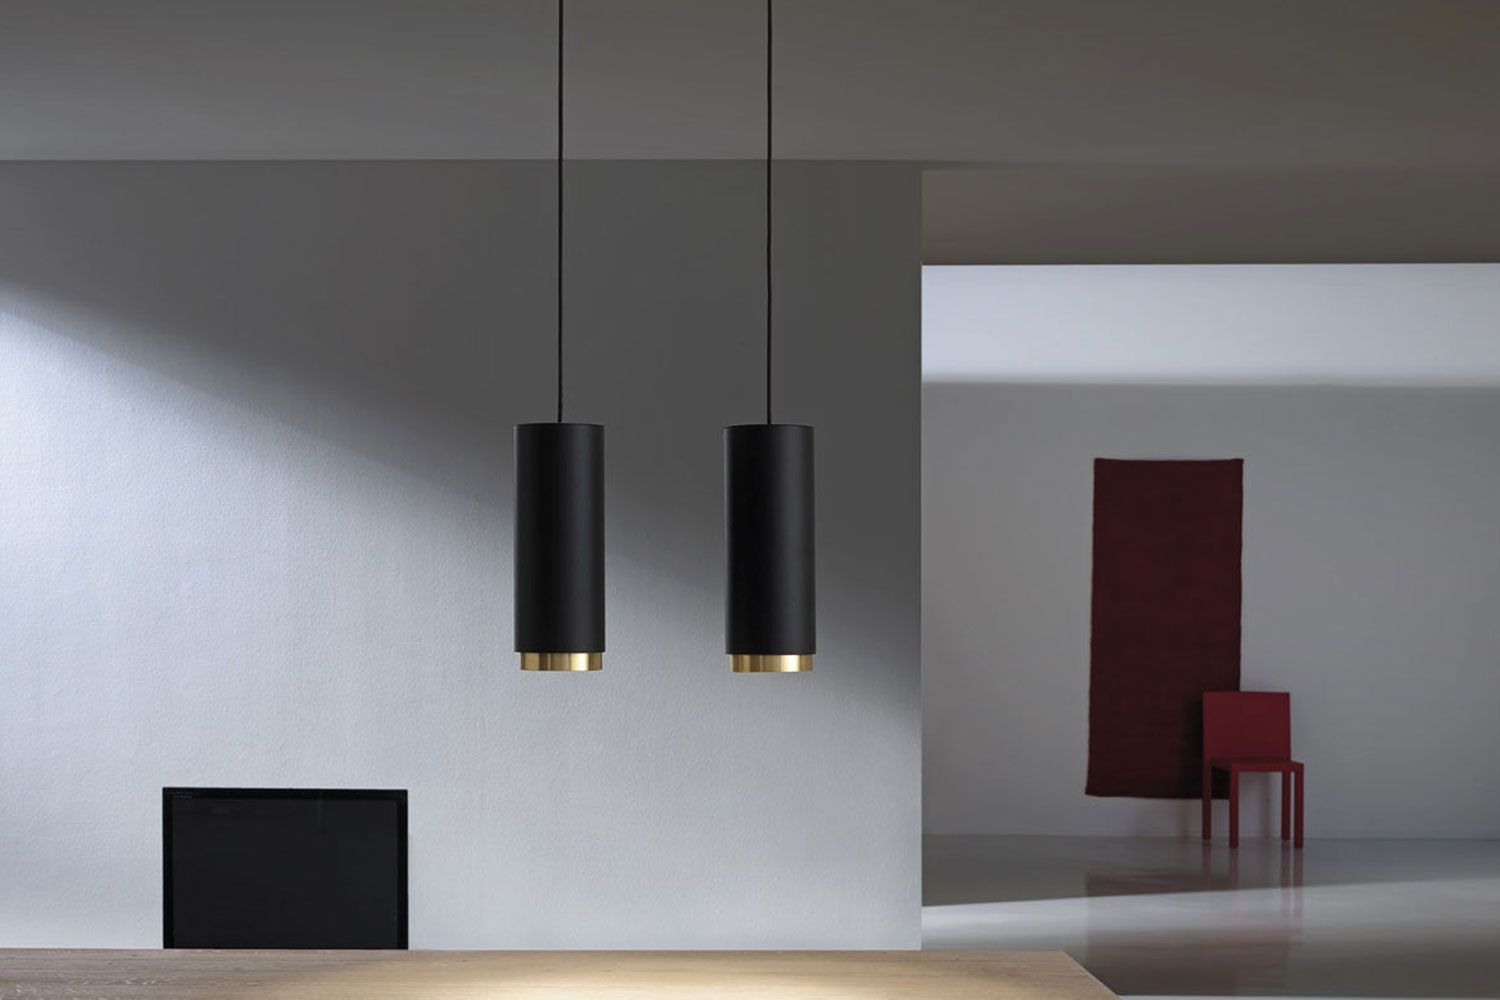 Pop Ø suspended fixture for interior lighting consisting of